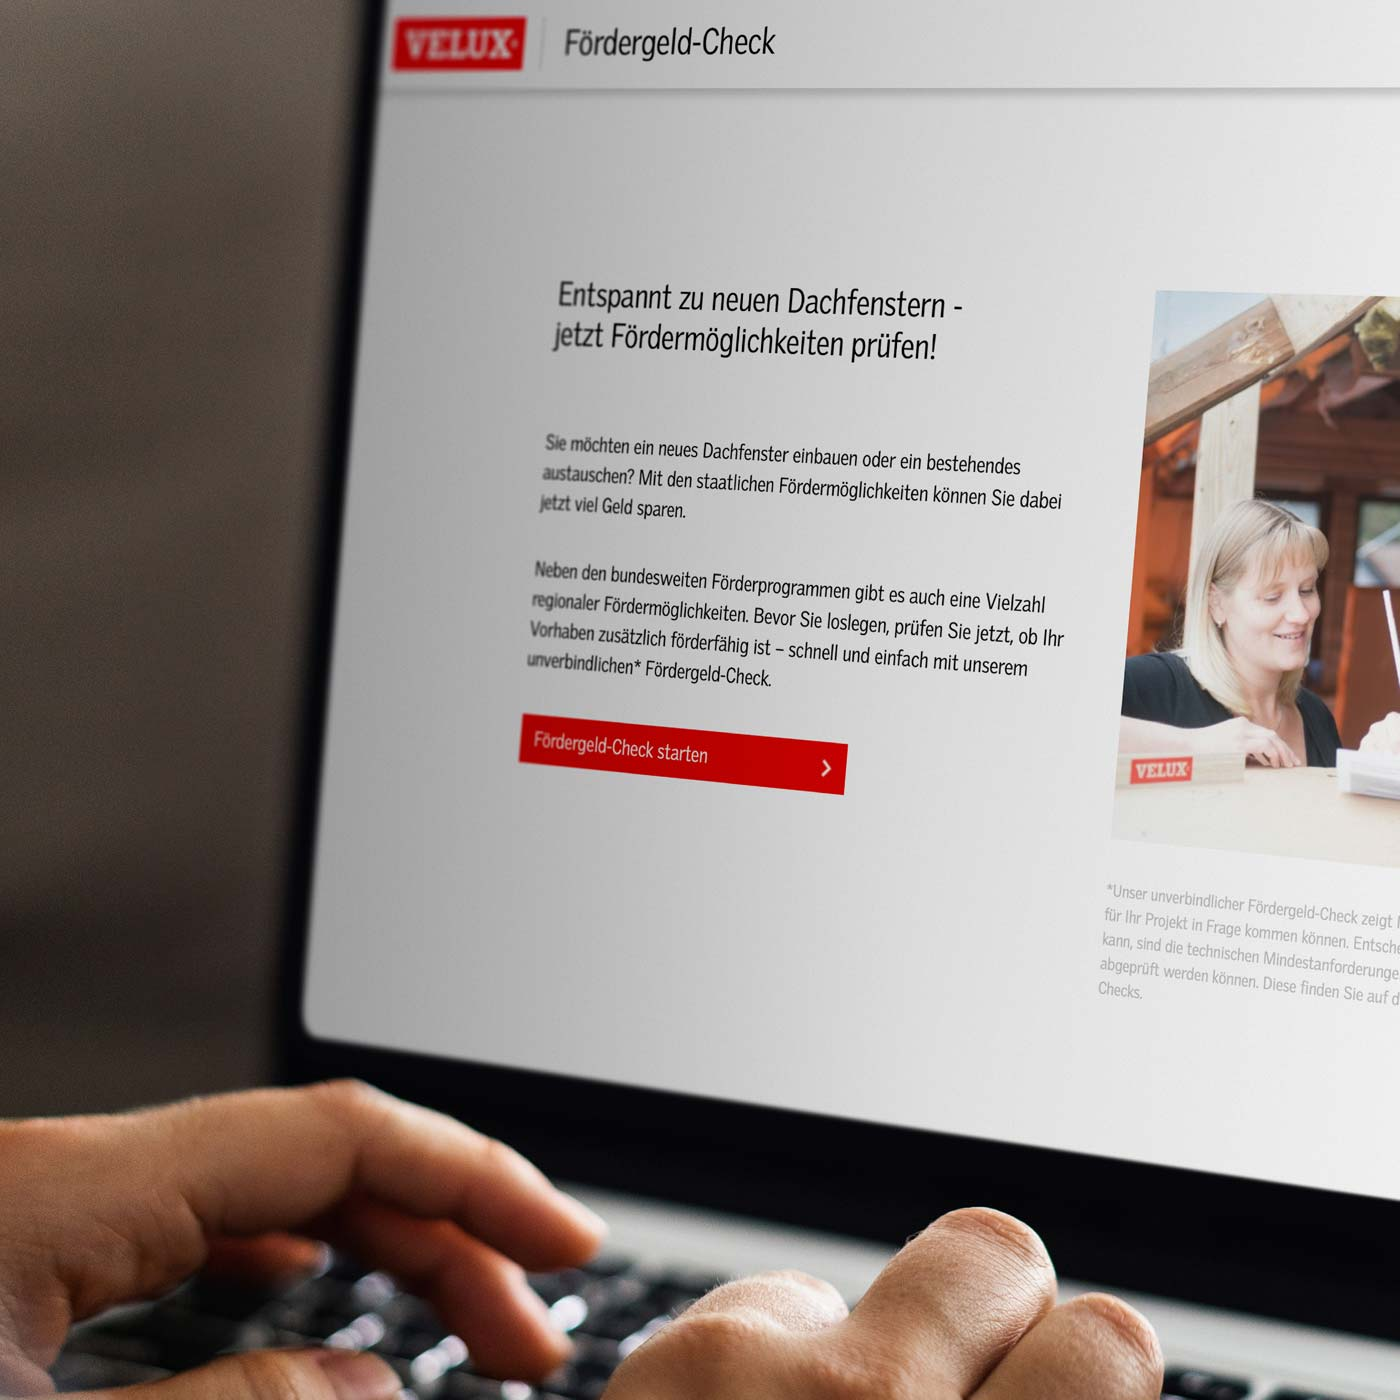 Screen des Online-Tools VELUX Fördergeld-Check